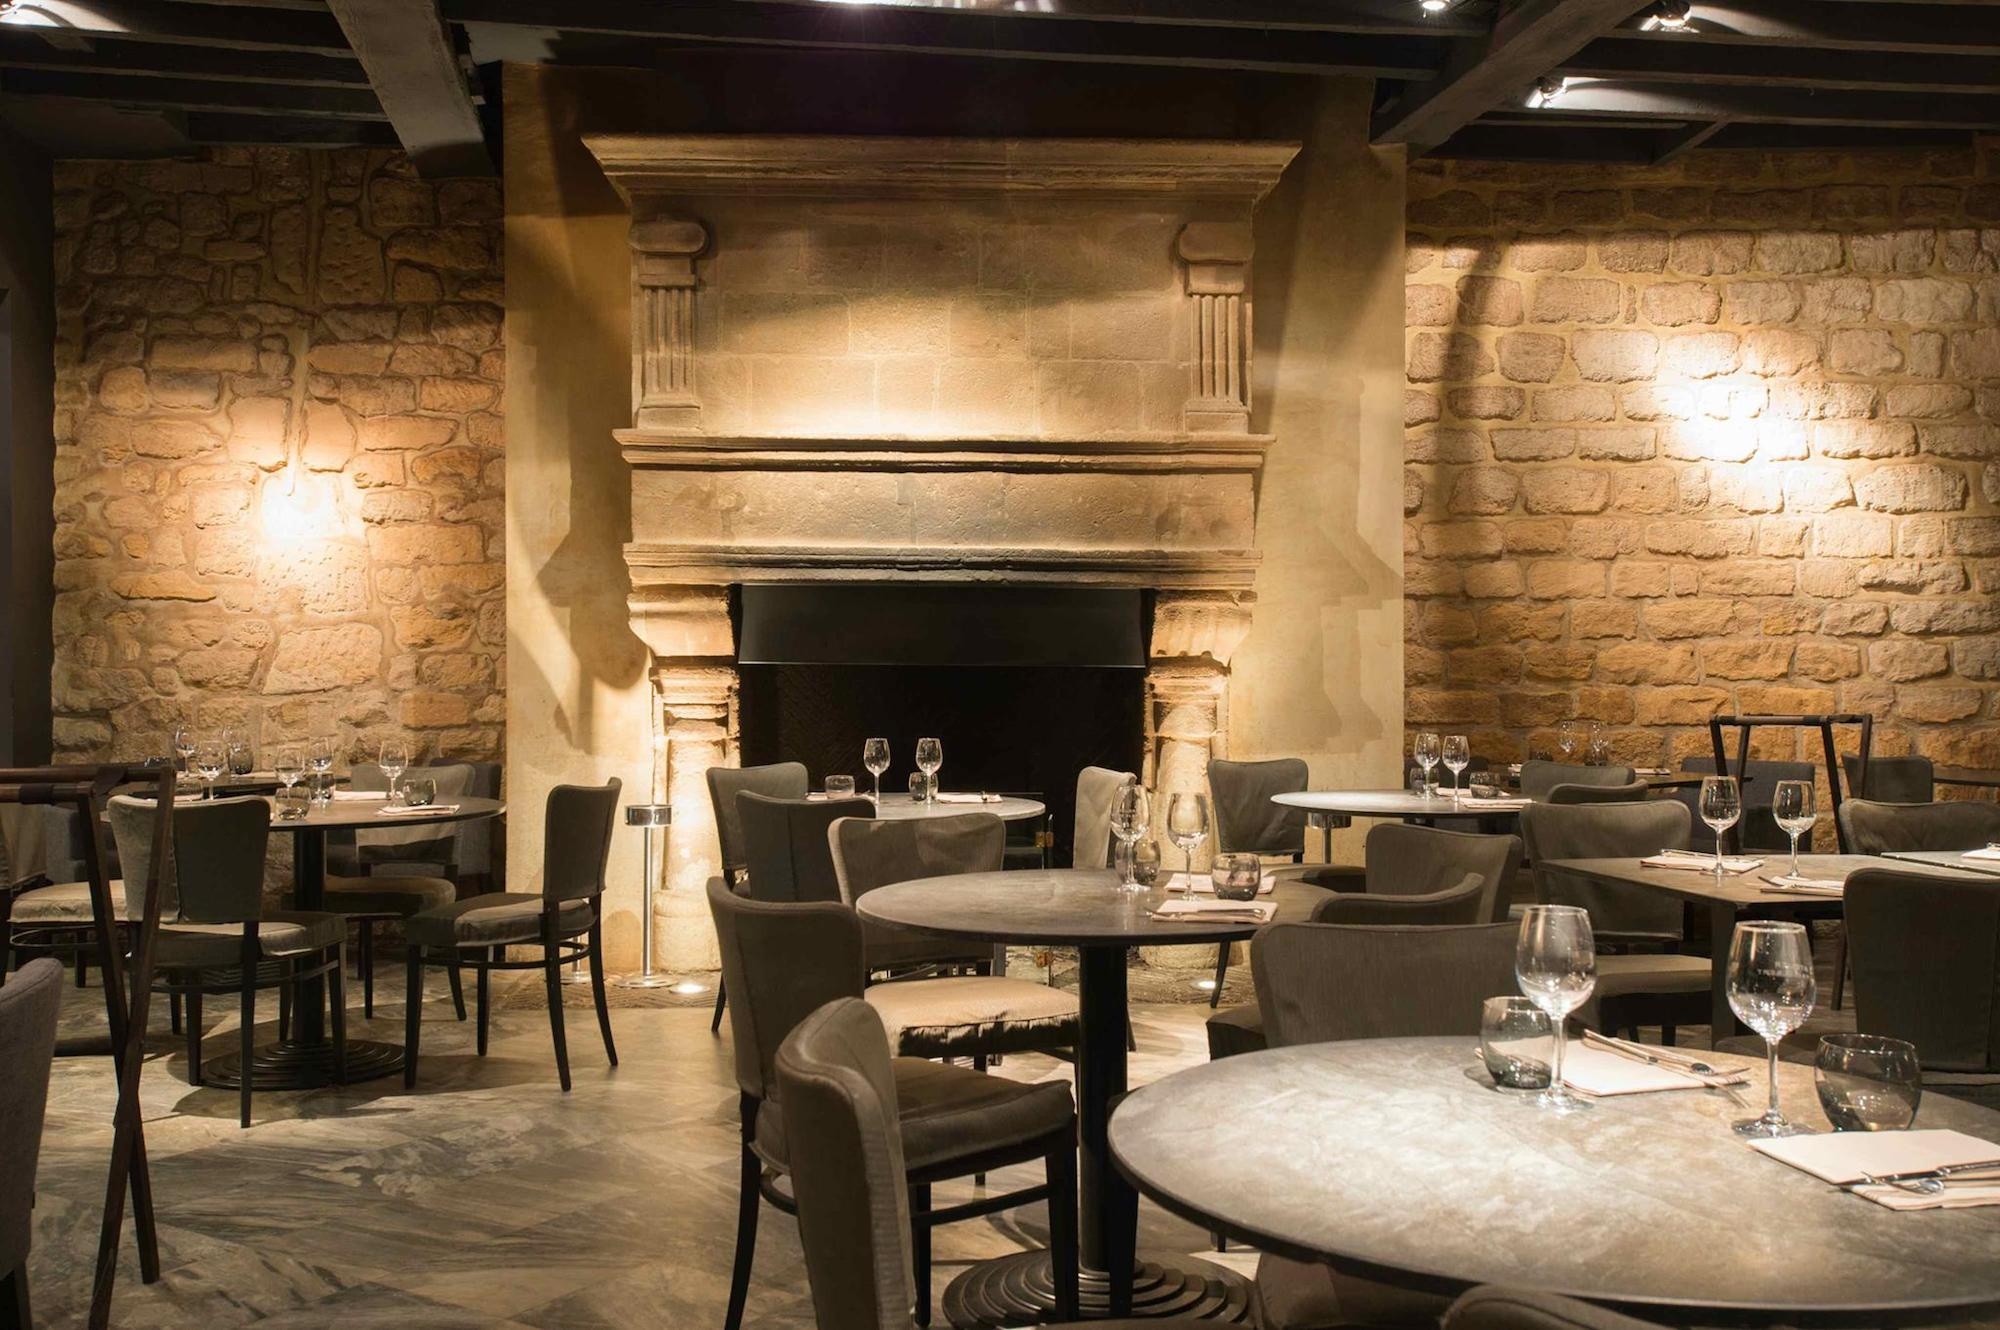 The chimney room of Atelier Maître Albert features an imposing stone fireplace and open kitchen. Diners can enjoy fireside meals in this Left-bank establishment opposite Notre Dame.